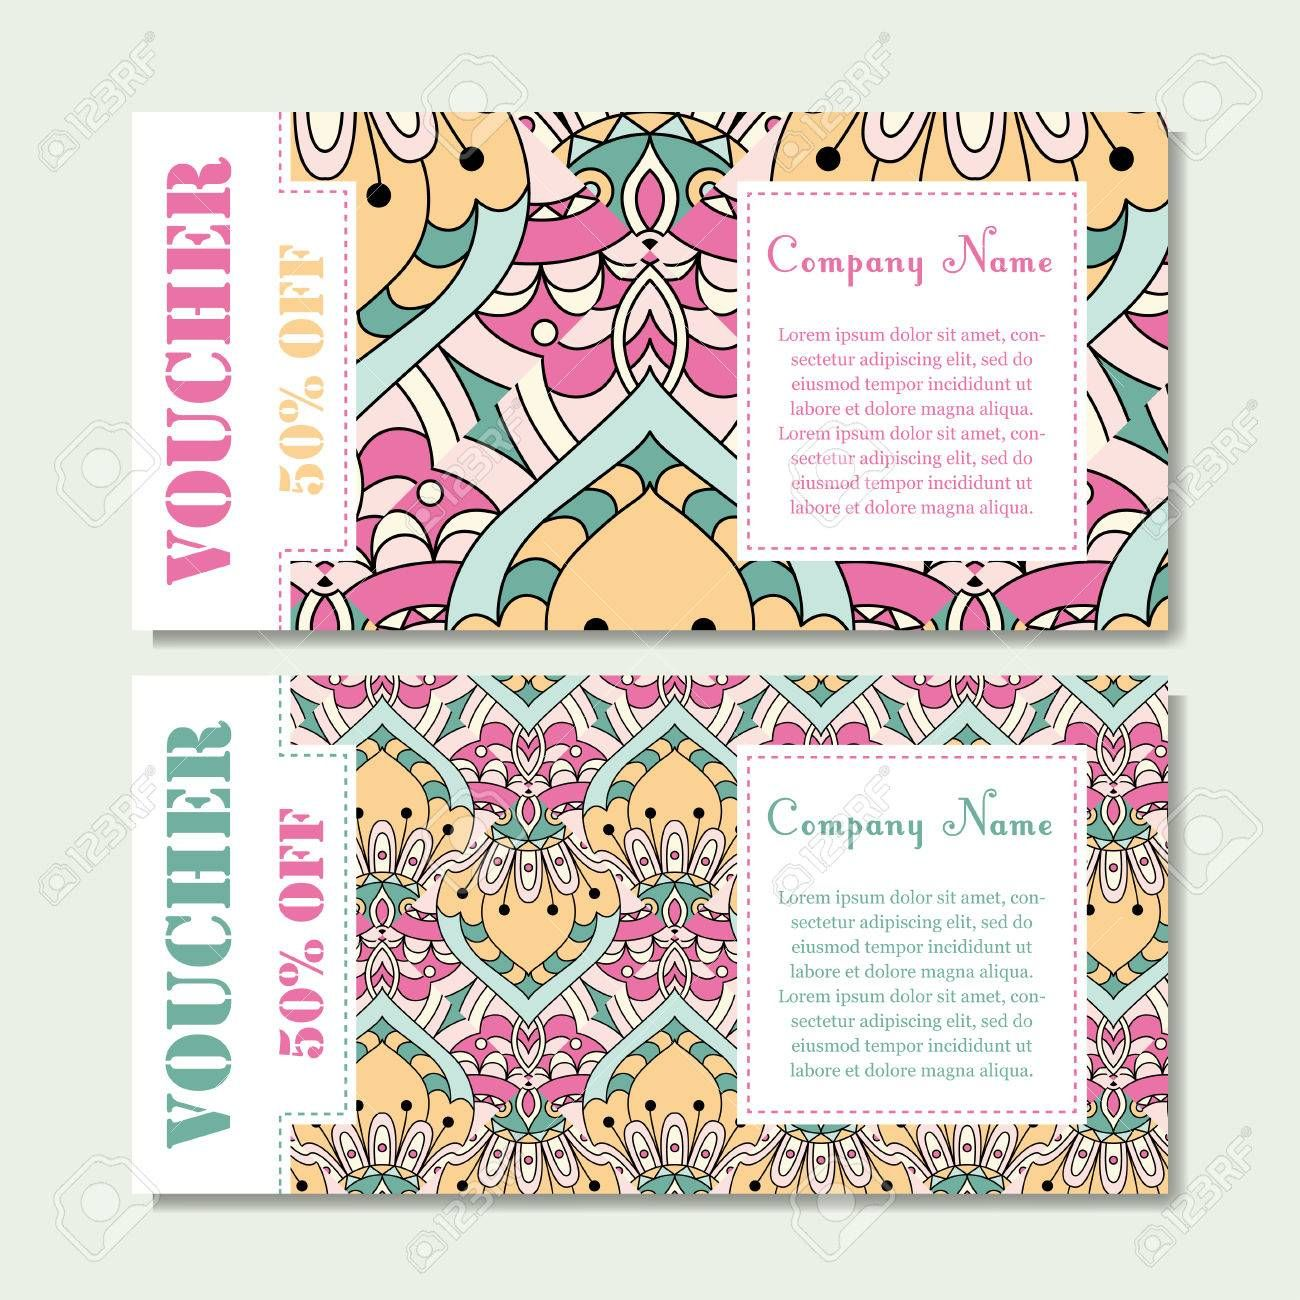 Yoga Gift Certificate Template Major Magdalene Project Pertaining To Magazine Subs Certificate Templates Gift Certificate Template Magazine Subscription Gift